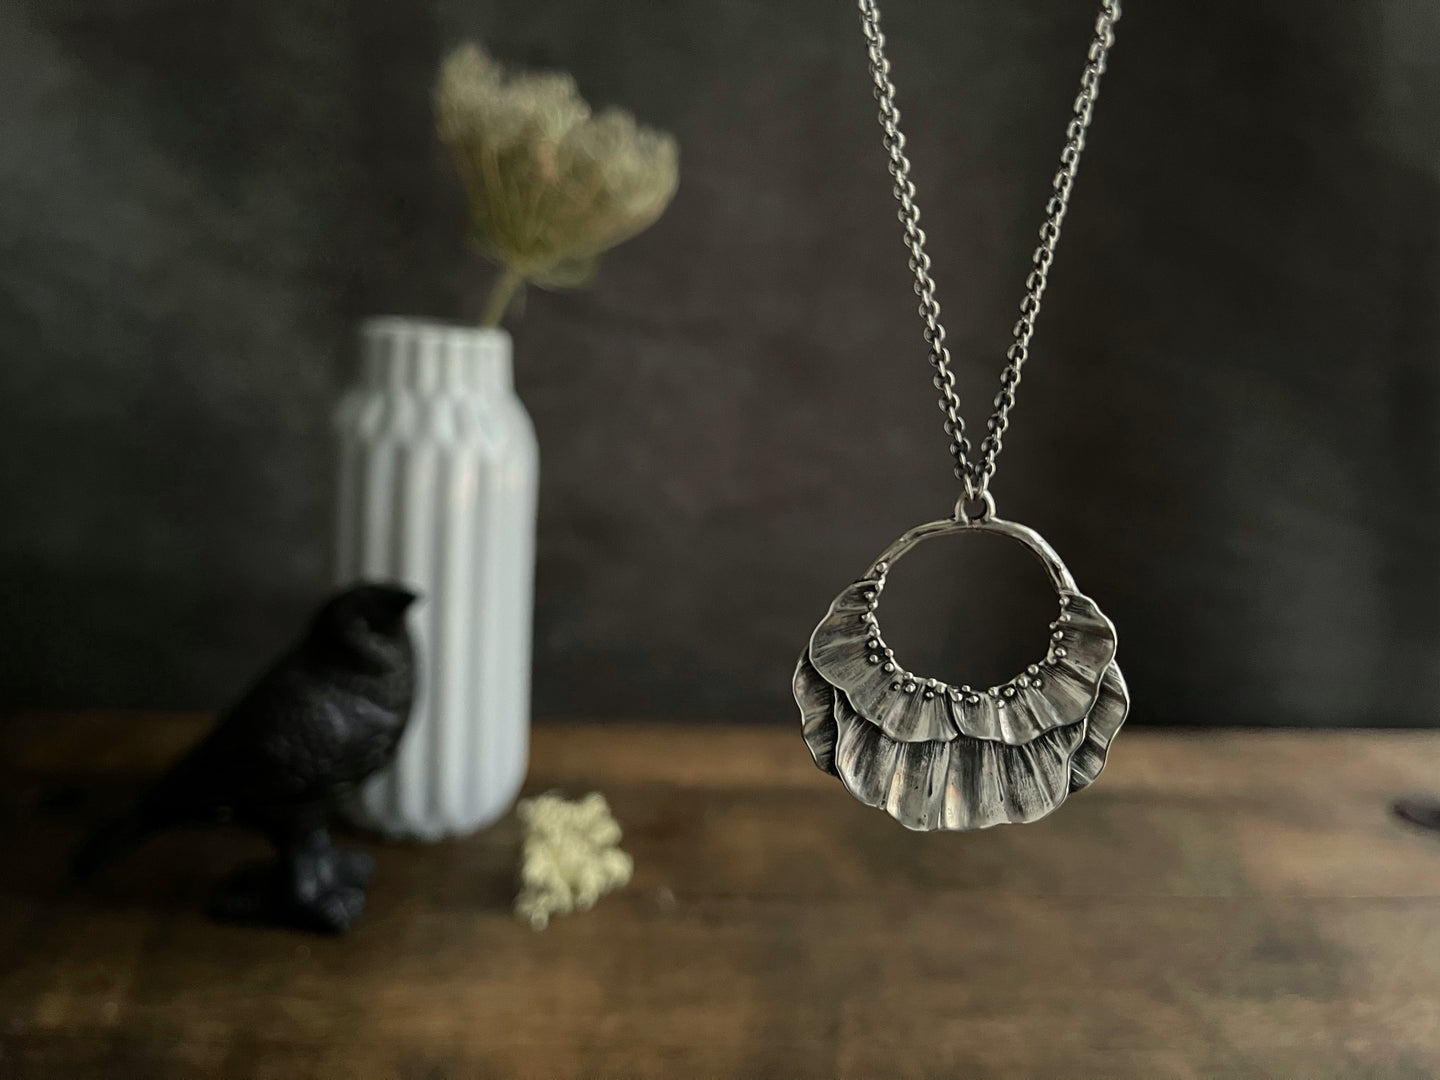 Handcrafted Jewelry for the Sentimental Soul